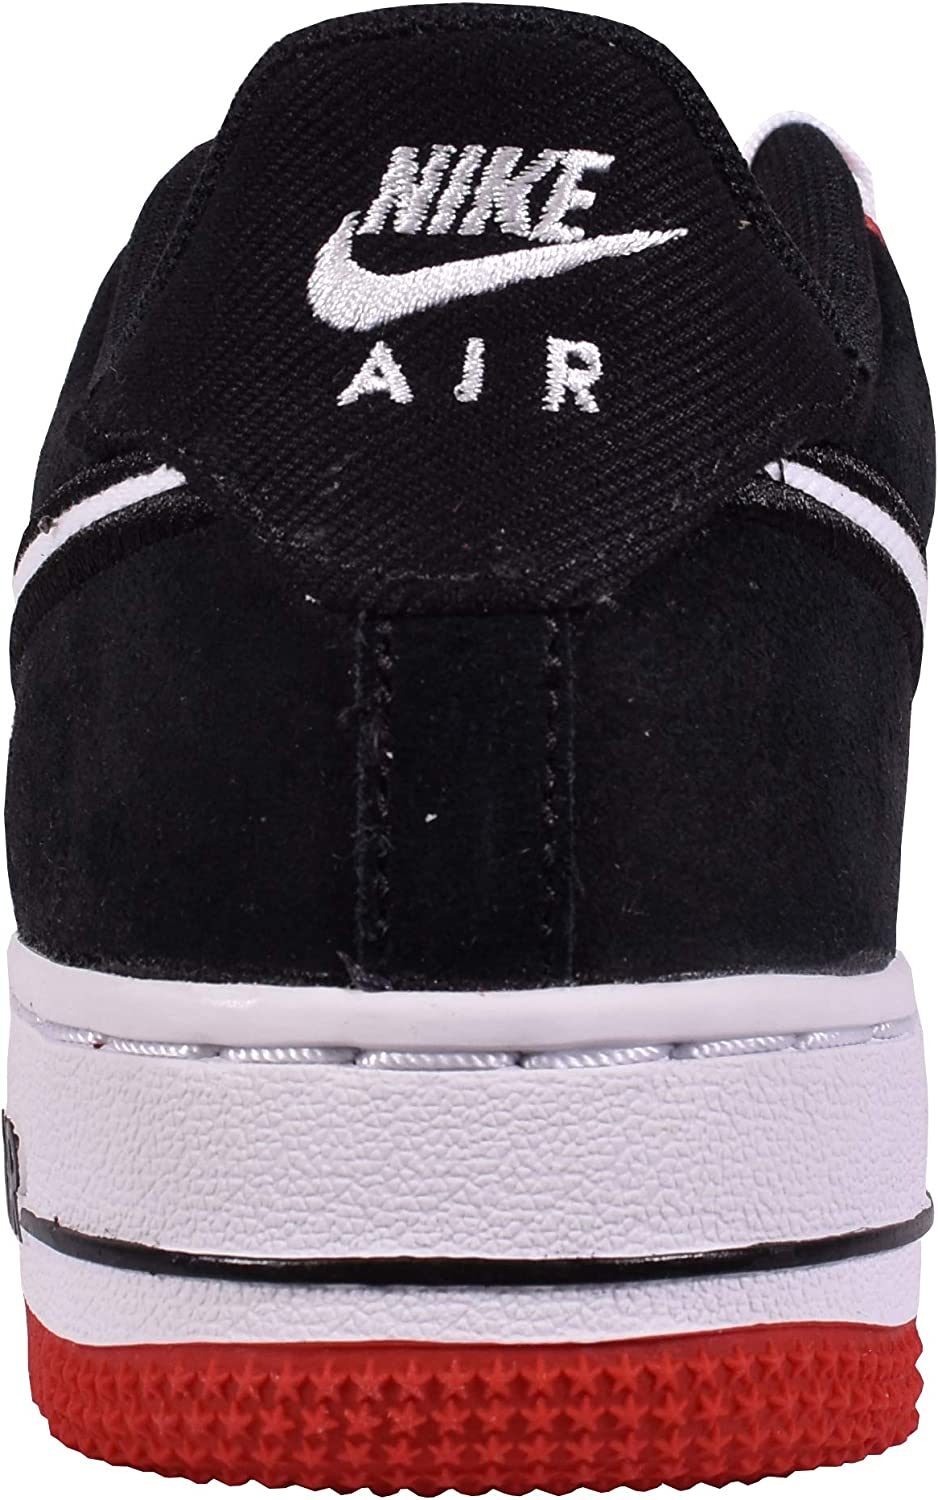 Details about Nike Air Force 1 LV8 1 GS Shoes Sneaker Casual Trainers Sneakers AV0743 show original title